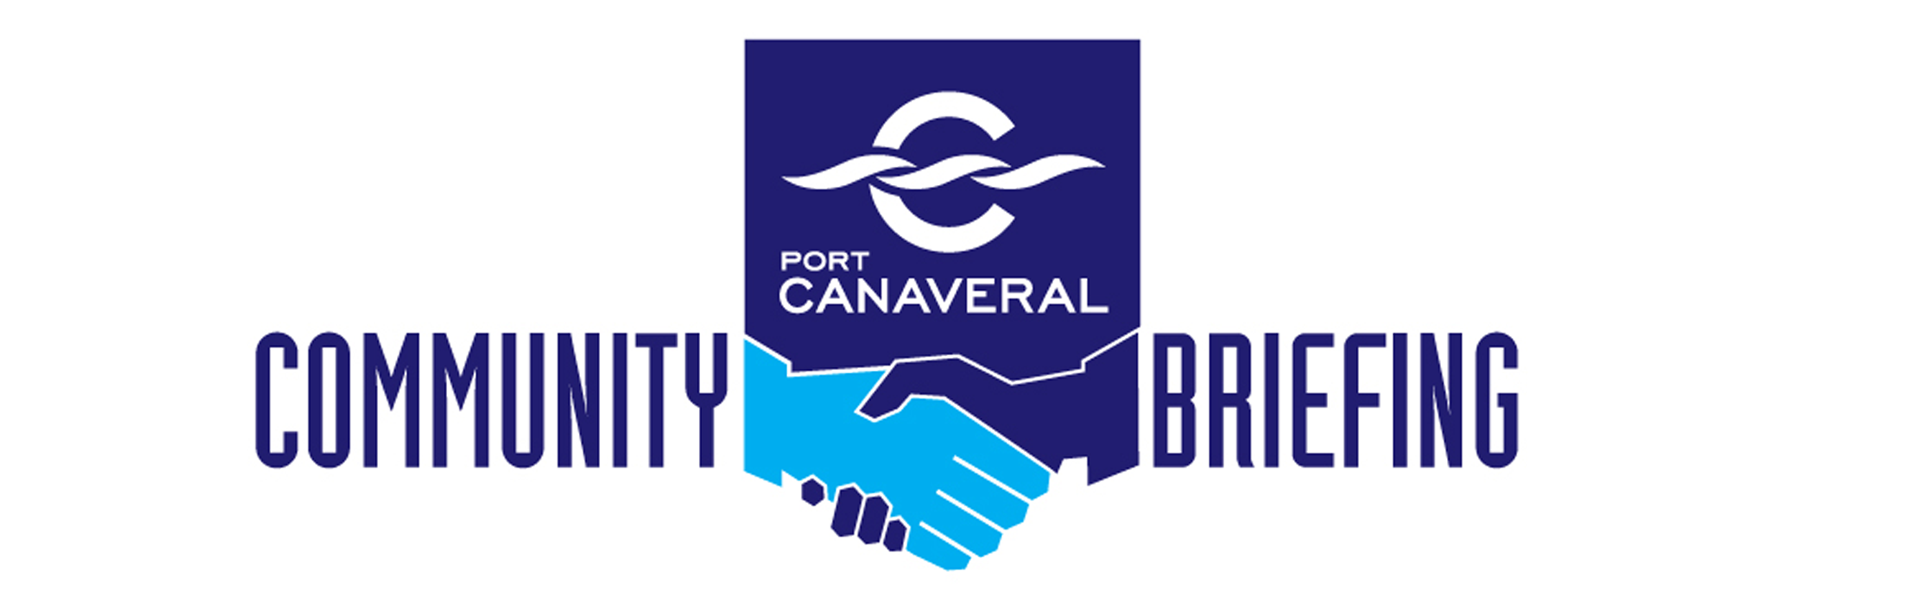 /PortCanaveral/media/Port-Canaveral/Slideshow%20Images/Community-Briefing.png?ext=.png